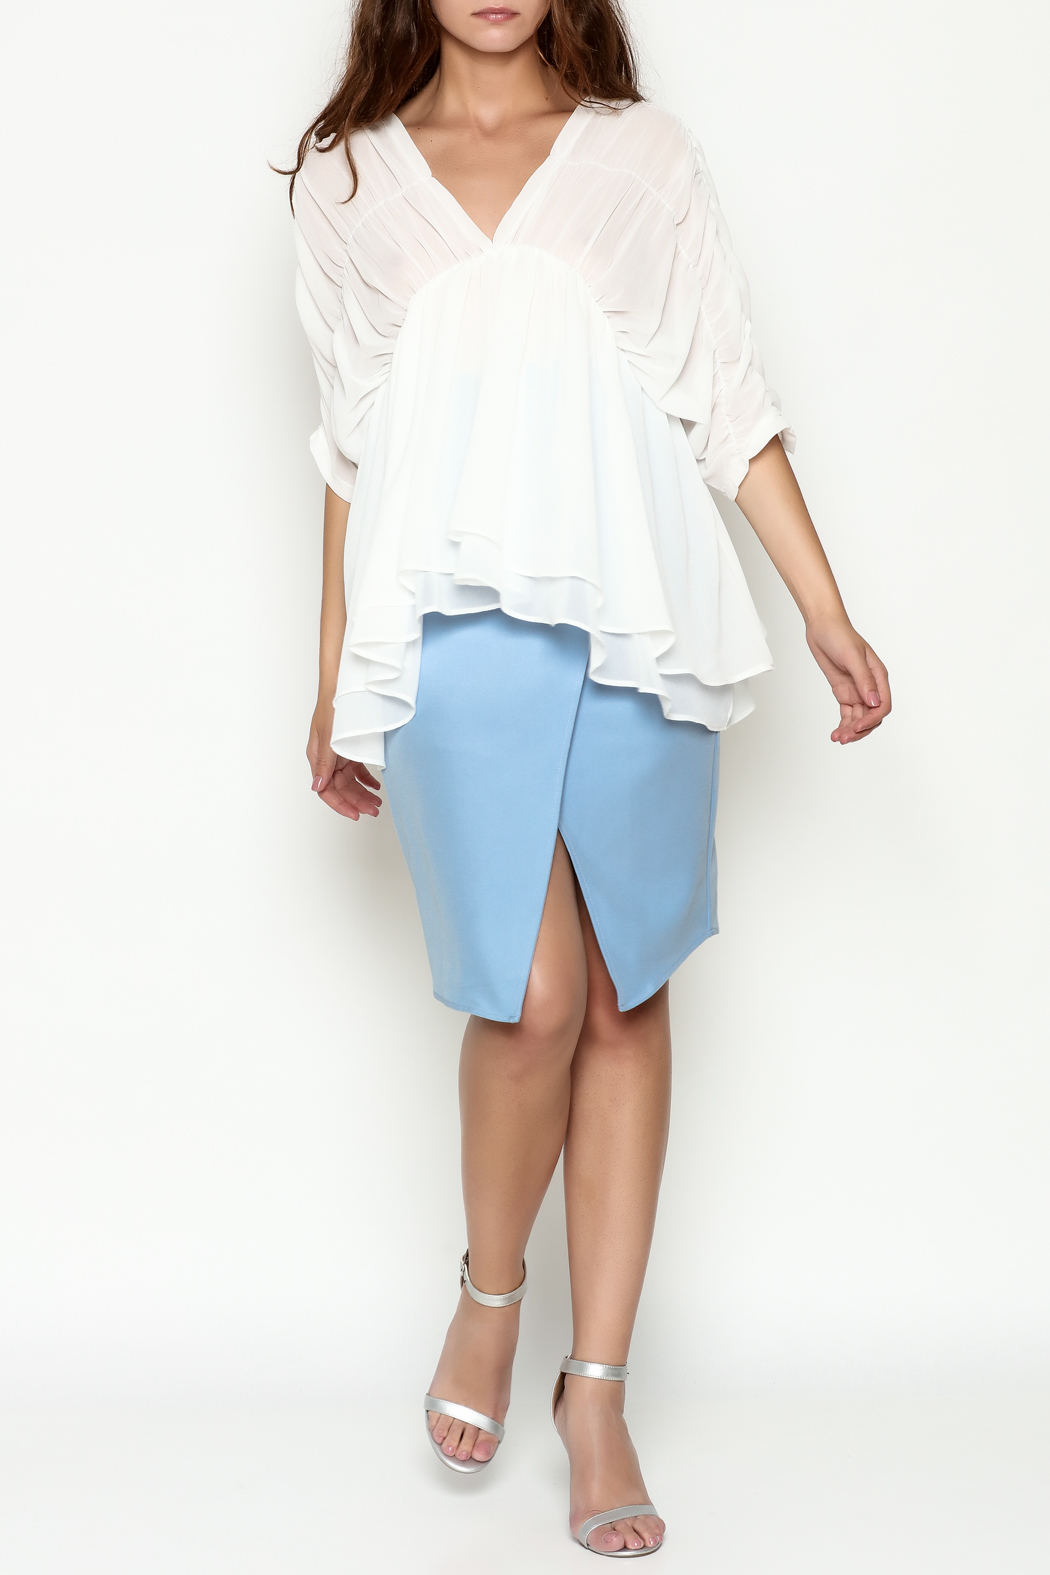 THINK CLOSET Flowy Dream Blouse - Side Cropped Image